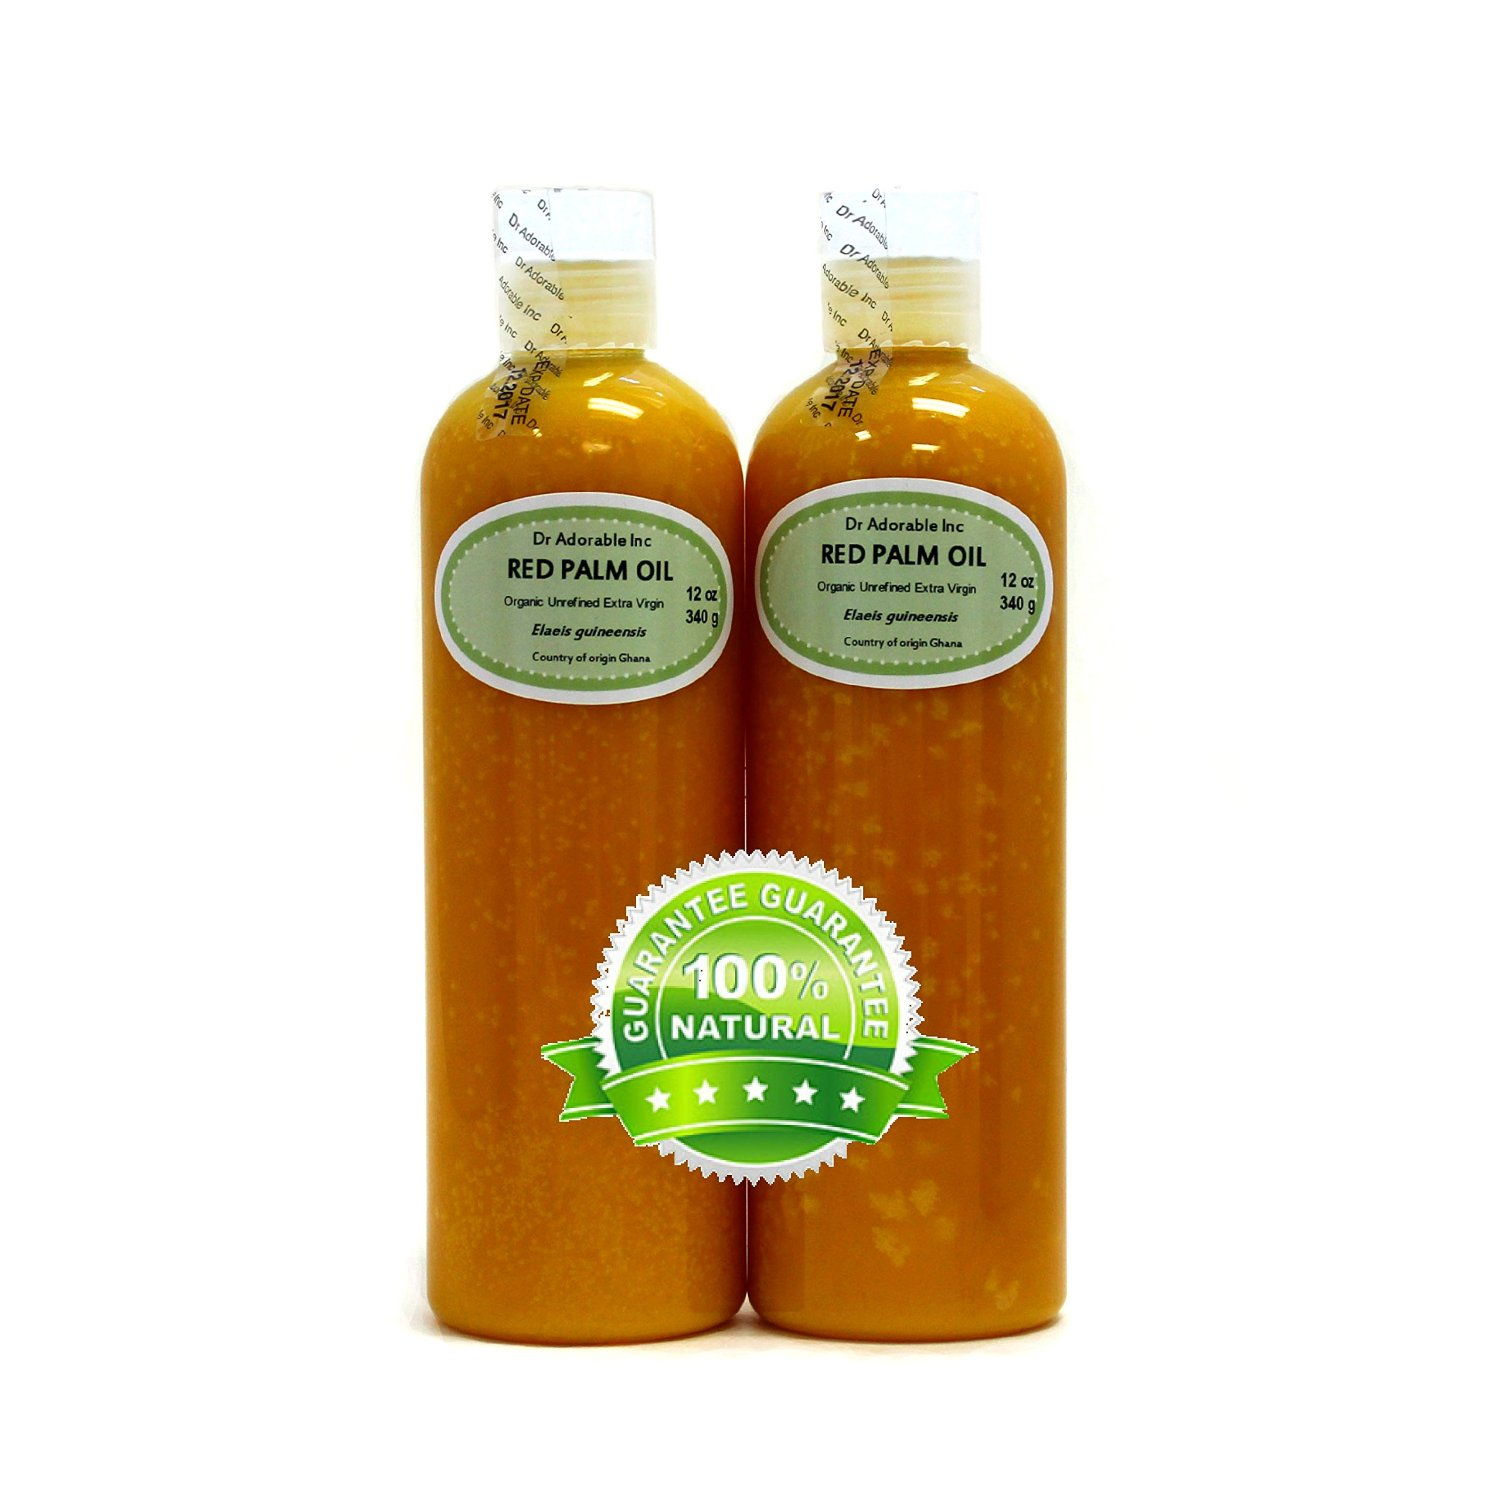 24 Oz Raw Extra Virgin Red Palm Oil Organic Unrefined (2 of 12 Oz bottles)